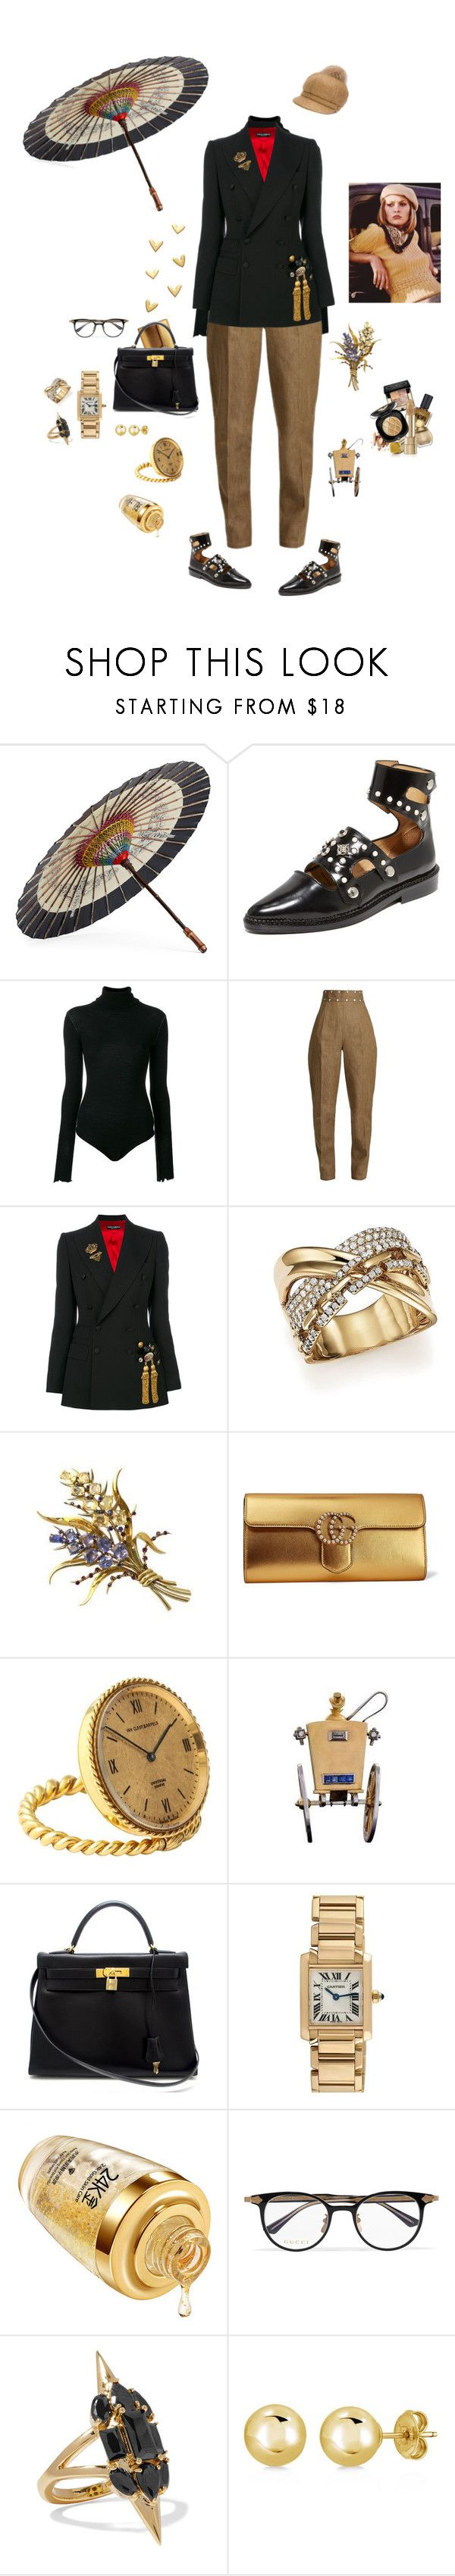 """""""Fashion film"""" by mbarbosa ❤ liked on Polyvore featuring Gucci, Toga, Unravel, Dolce&Gabbana, Bloomingdale's, Van Cleef & Arpels, Hermès, Cartier, Noir Jewelry and BERRICLE"""